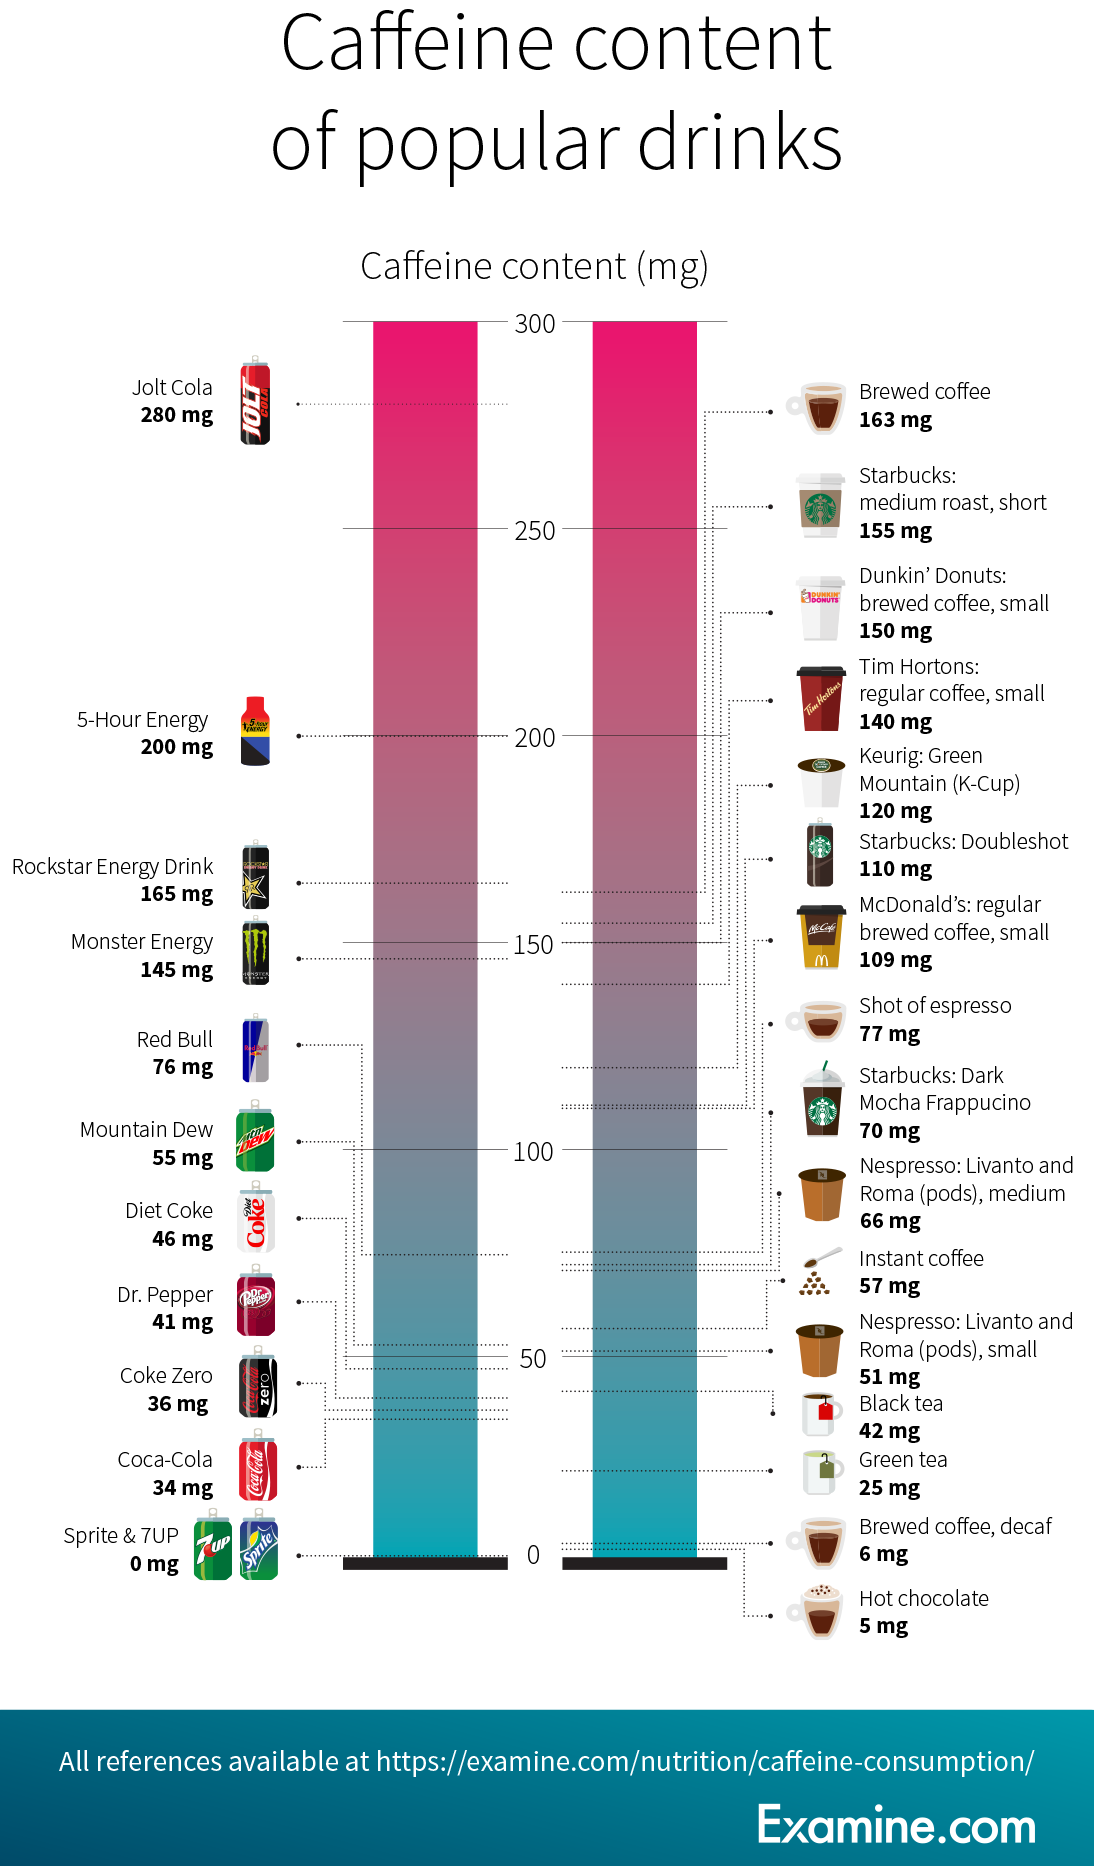 Caffeine content (in mg) for the most popular drinks